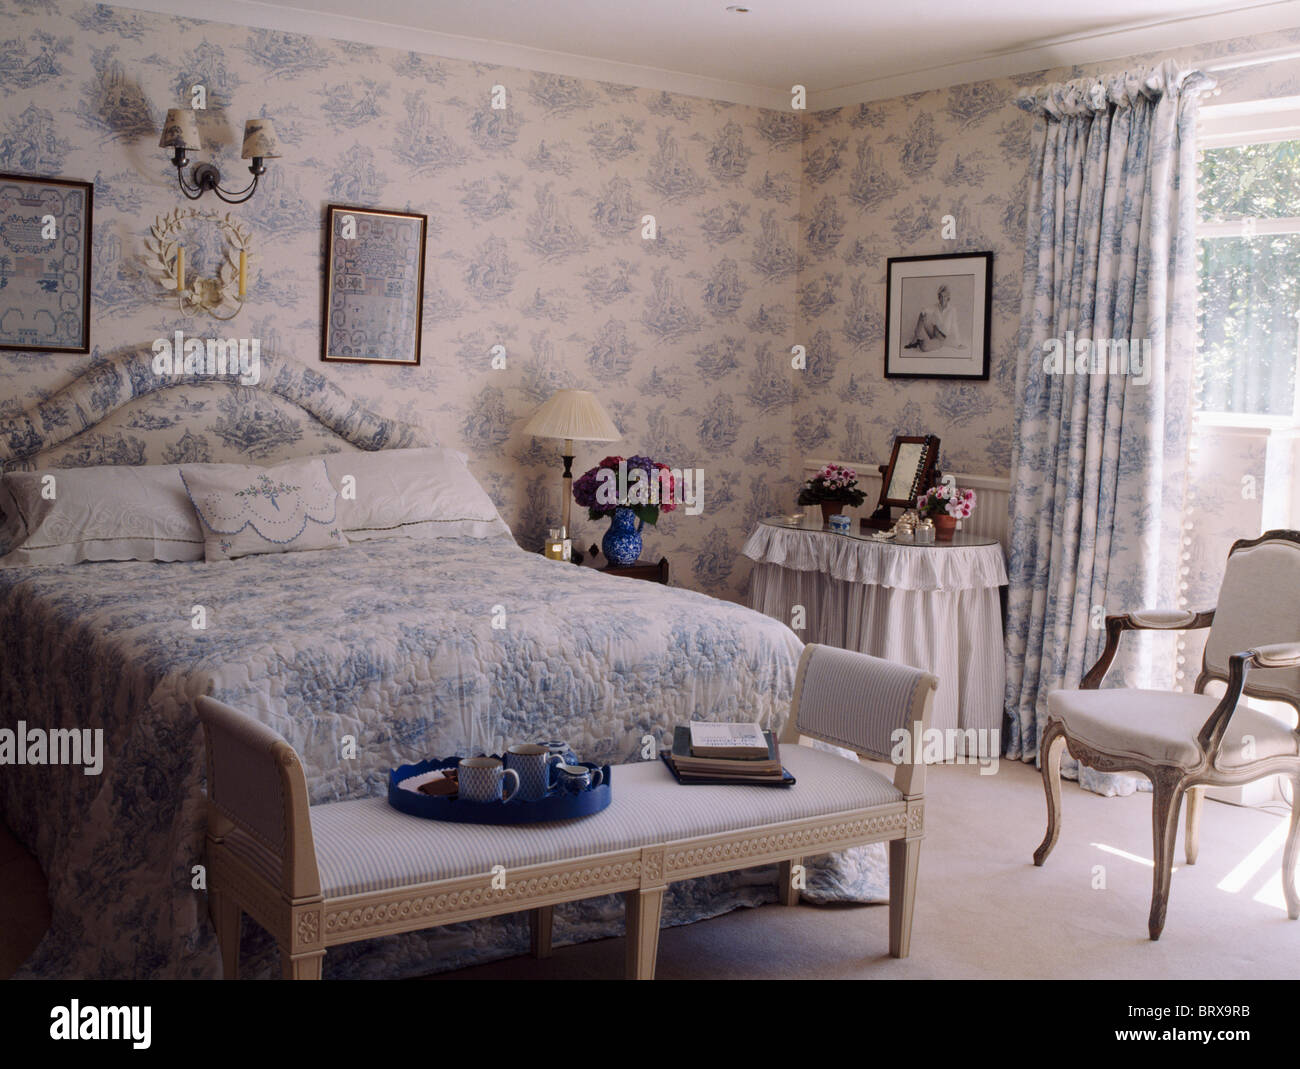 Blue And White Toile Bedroom: Blue+white Toile-de-Jouy Wallpaper With Matching Curtains